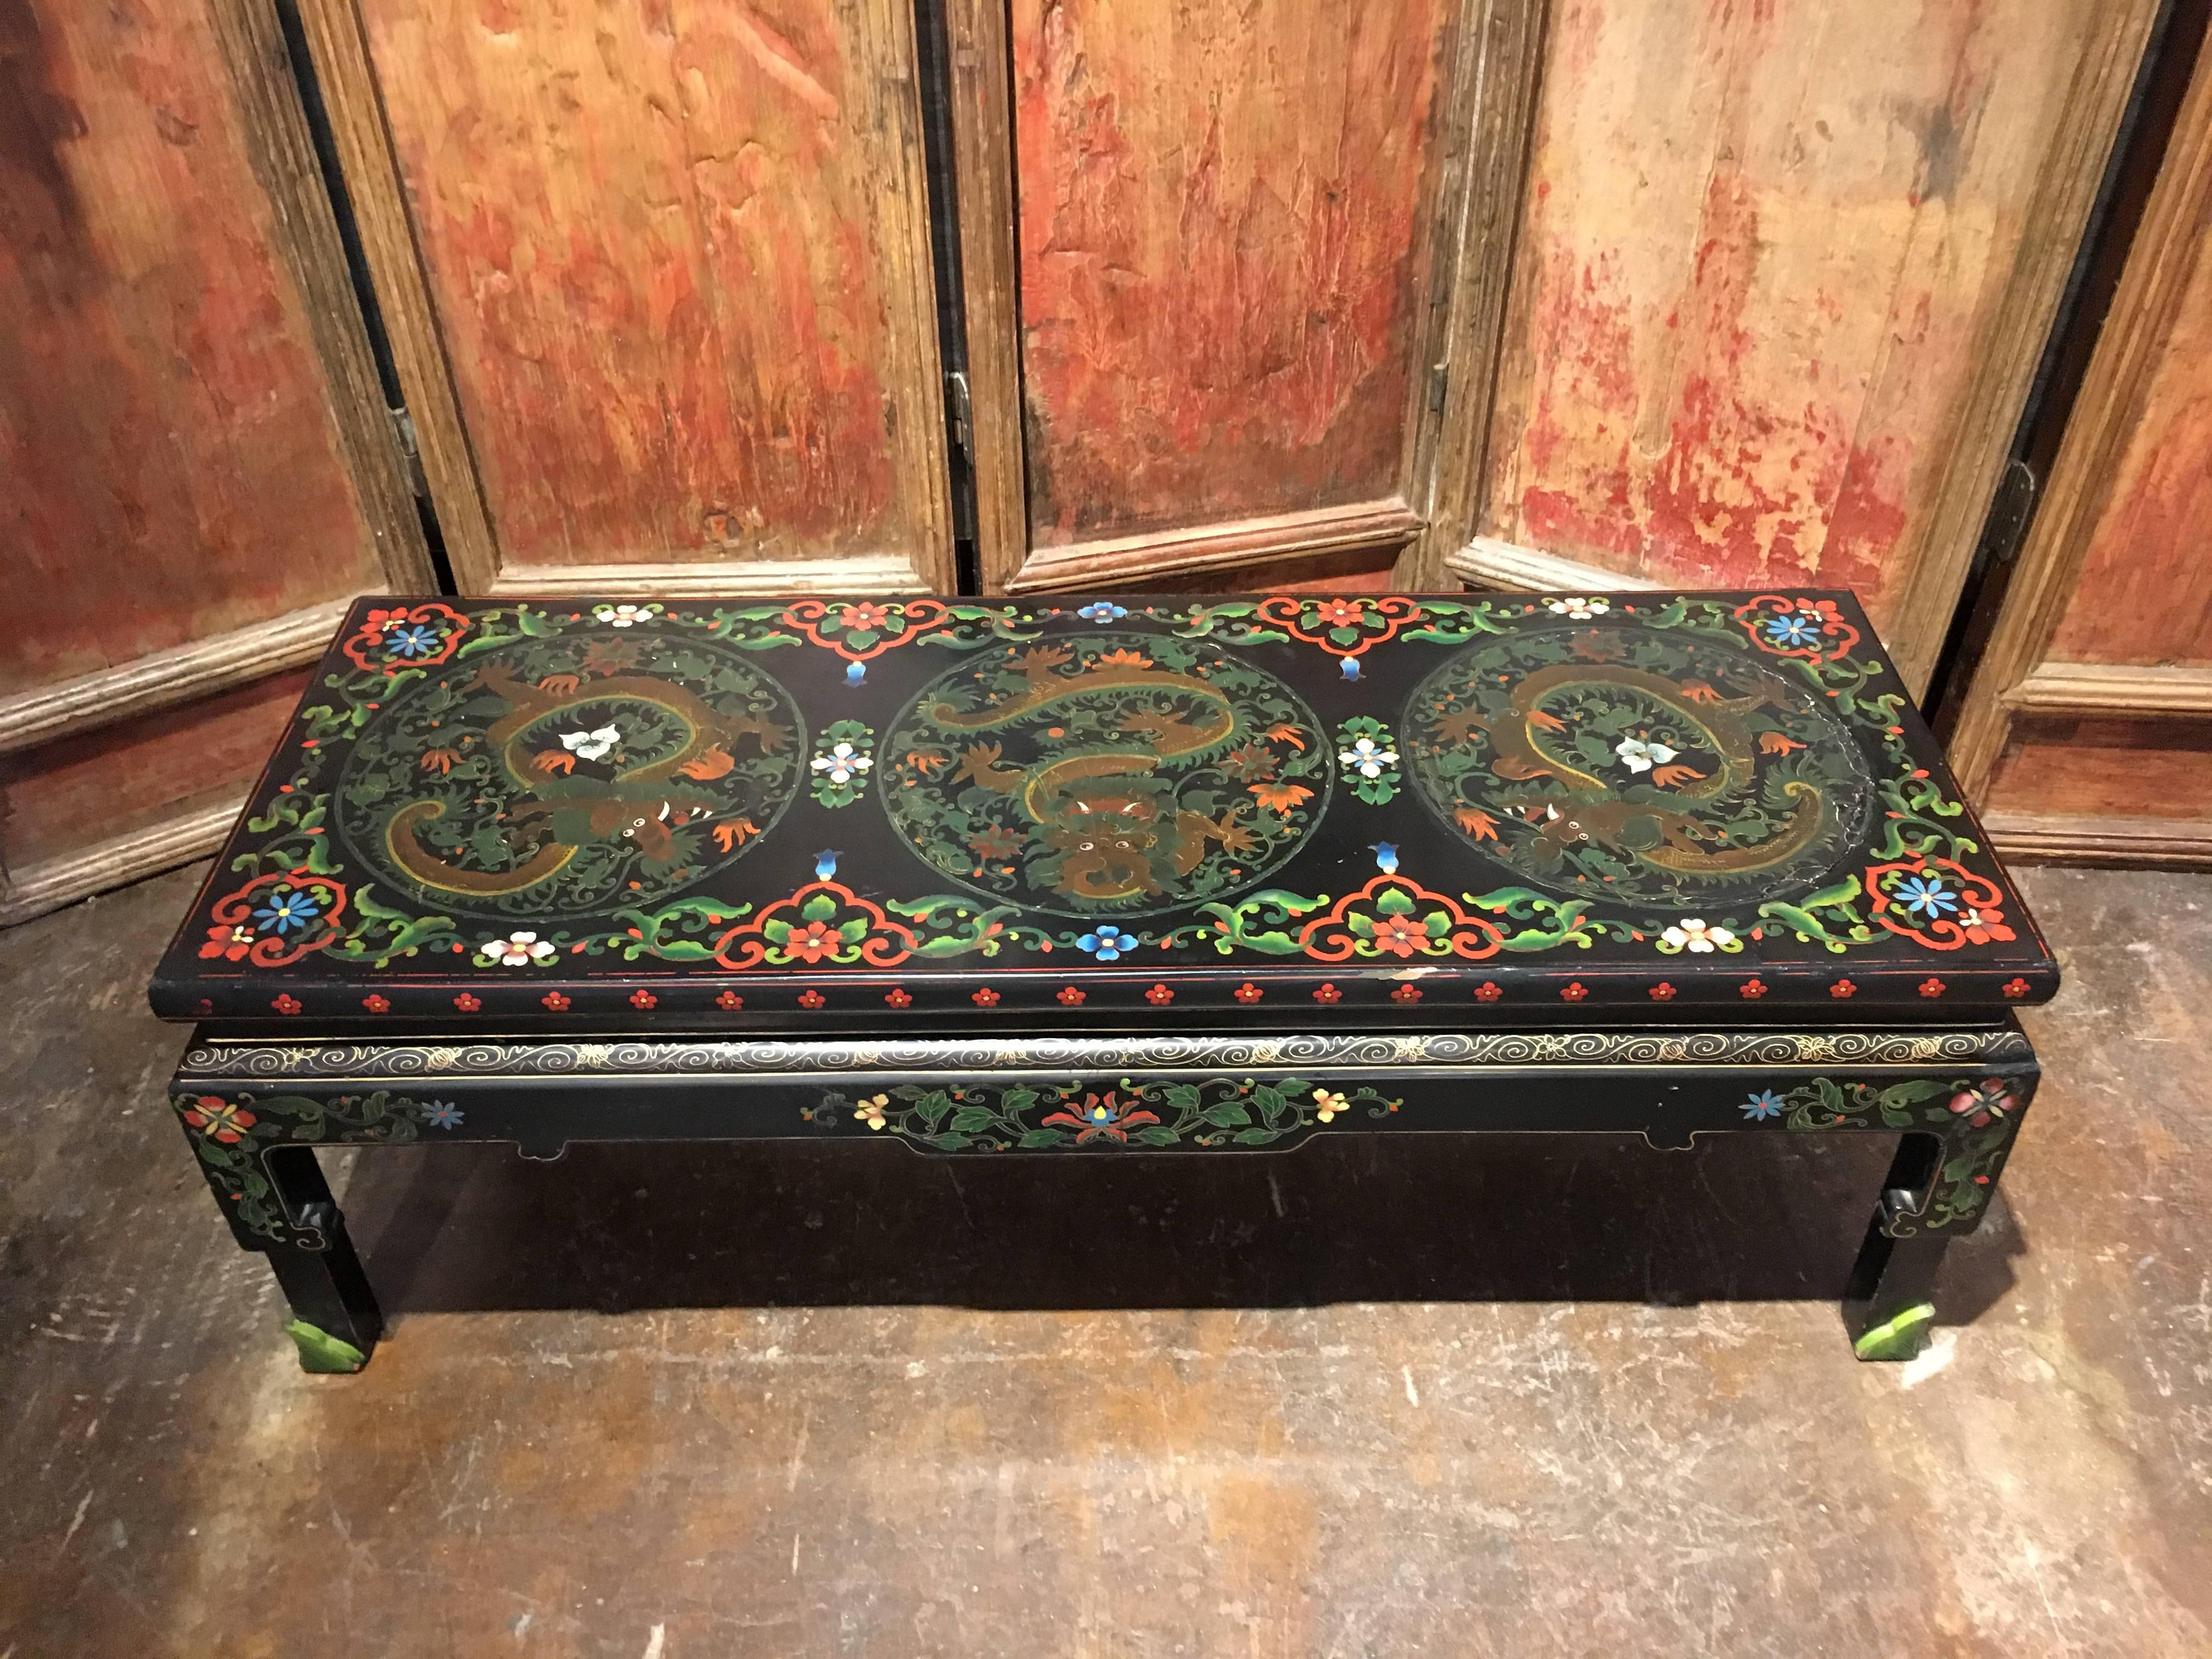 Chinese Painted Dragon Table Bench 5 master JPG